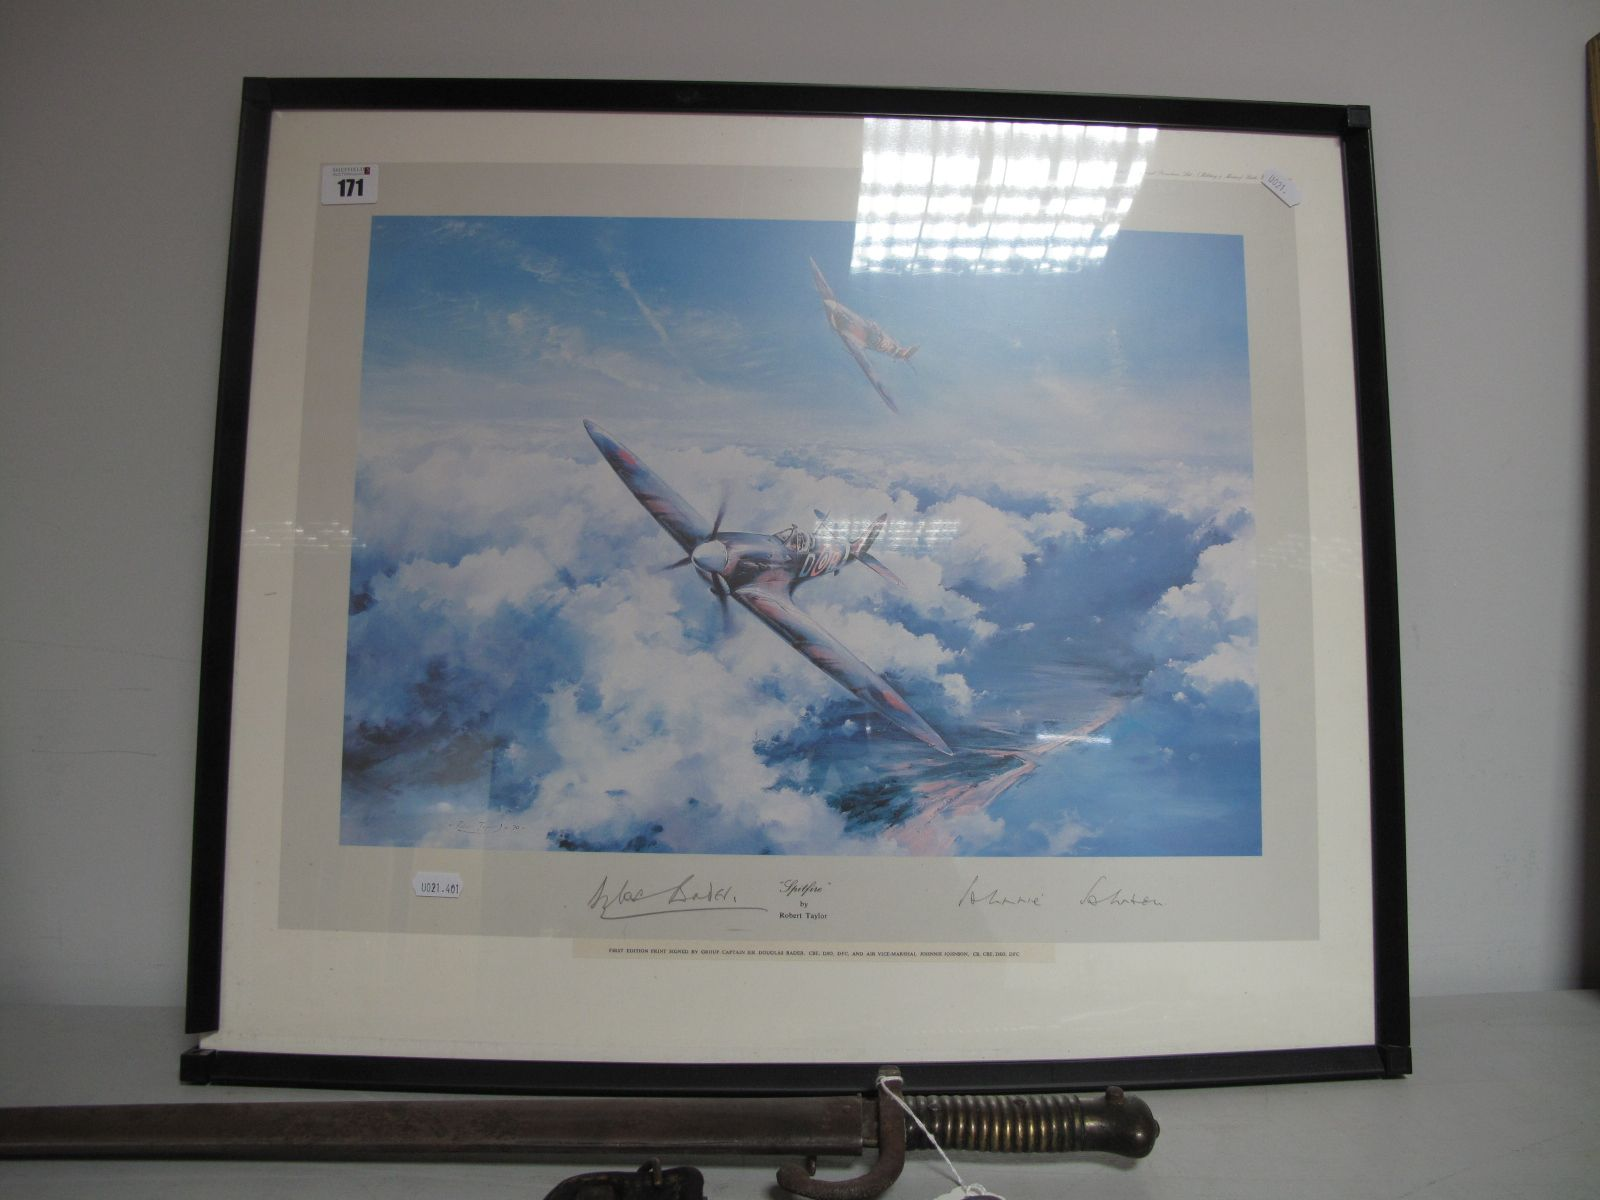 After Robert Taylor - Print Entitled 'Spitfire', graphite signed by Sir Douglas Bader, CBE, DSO, DFC